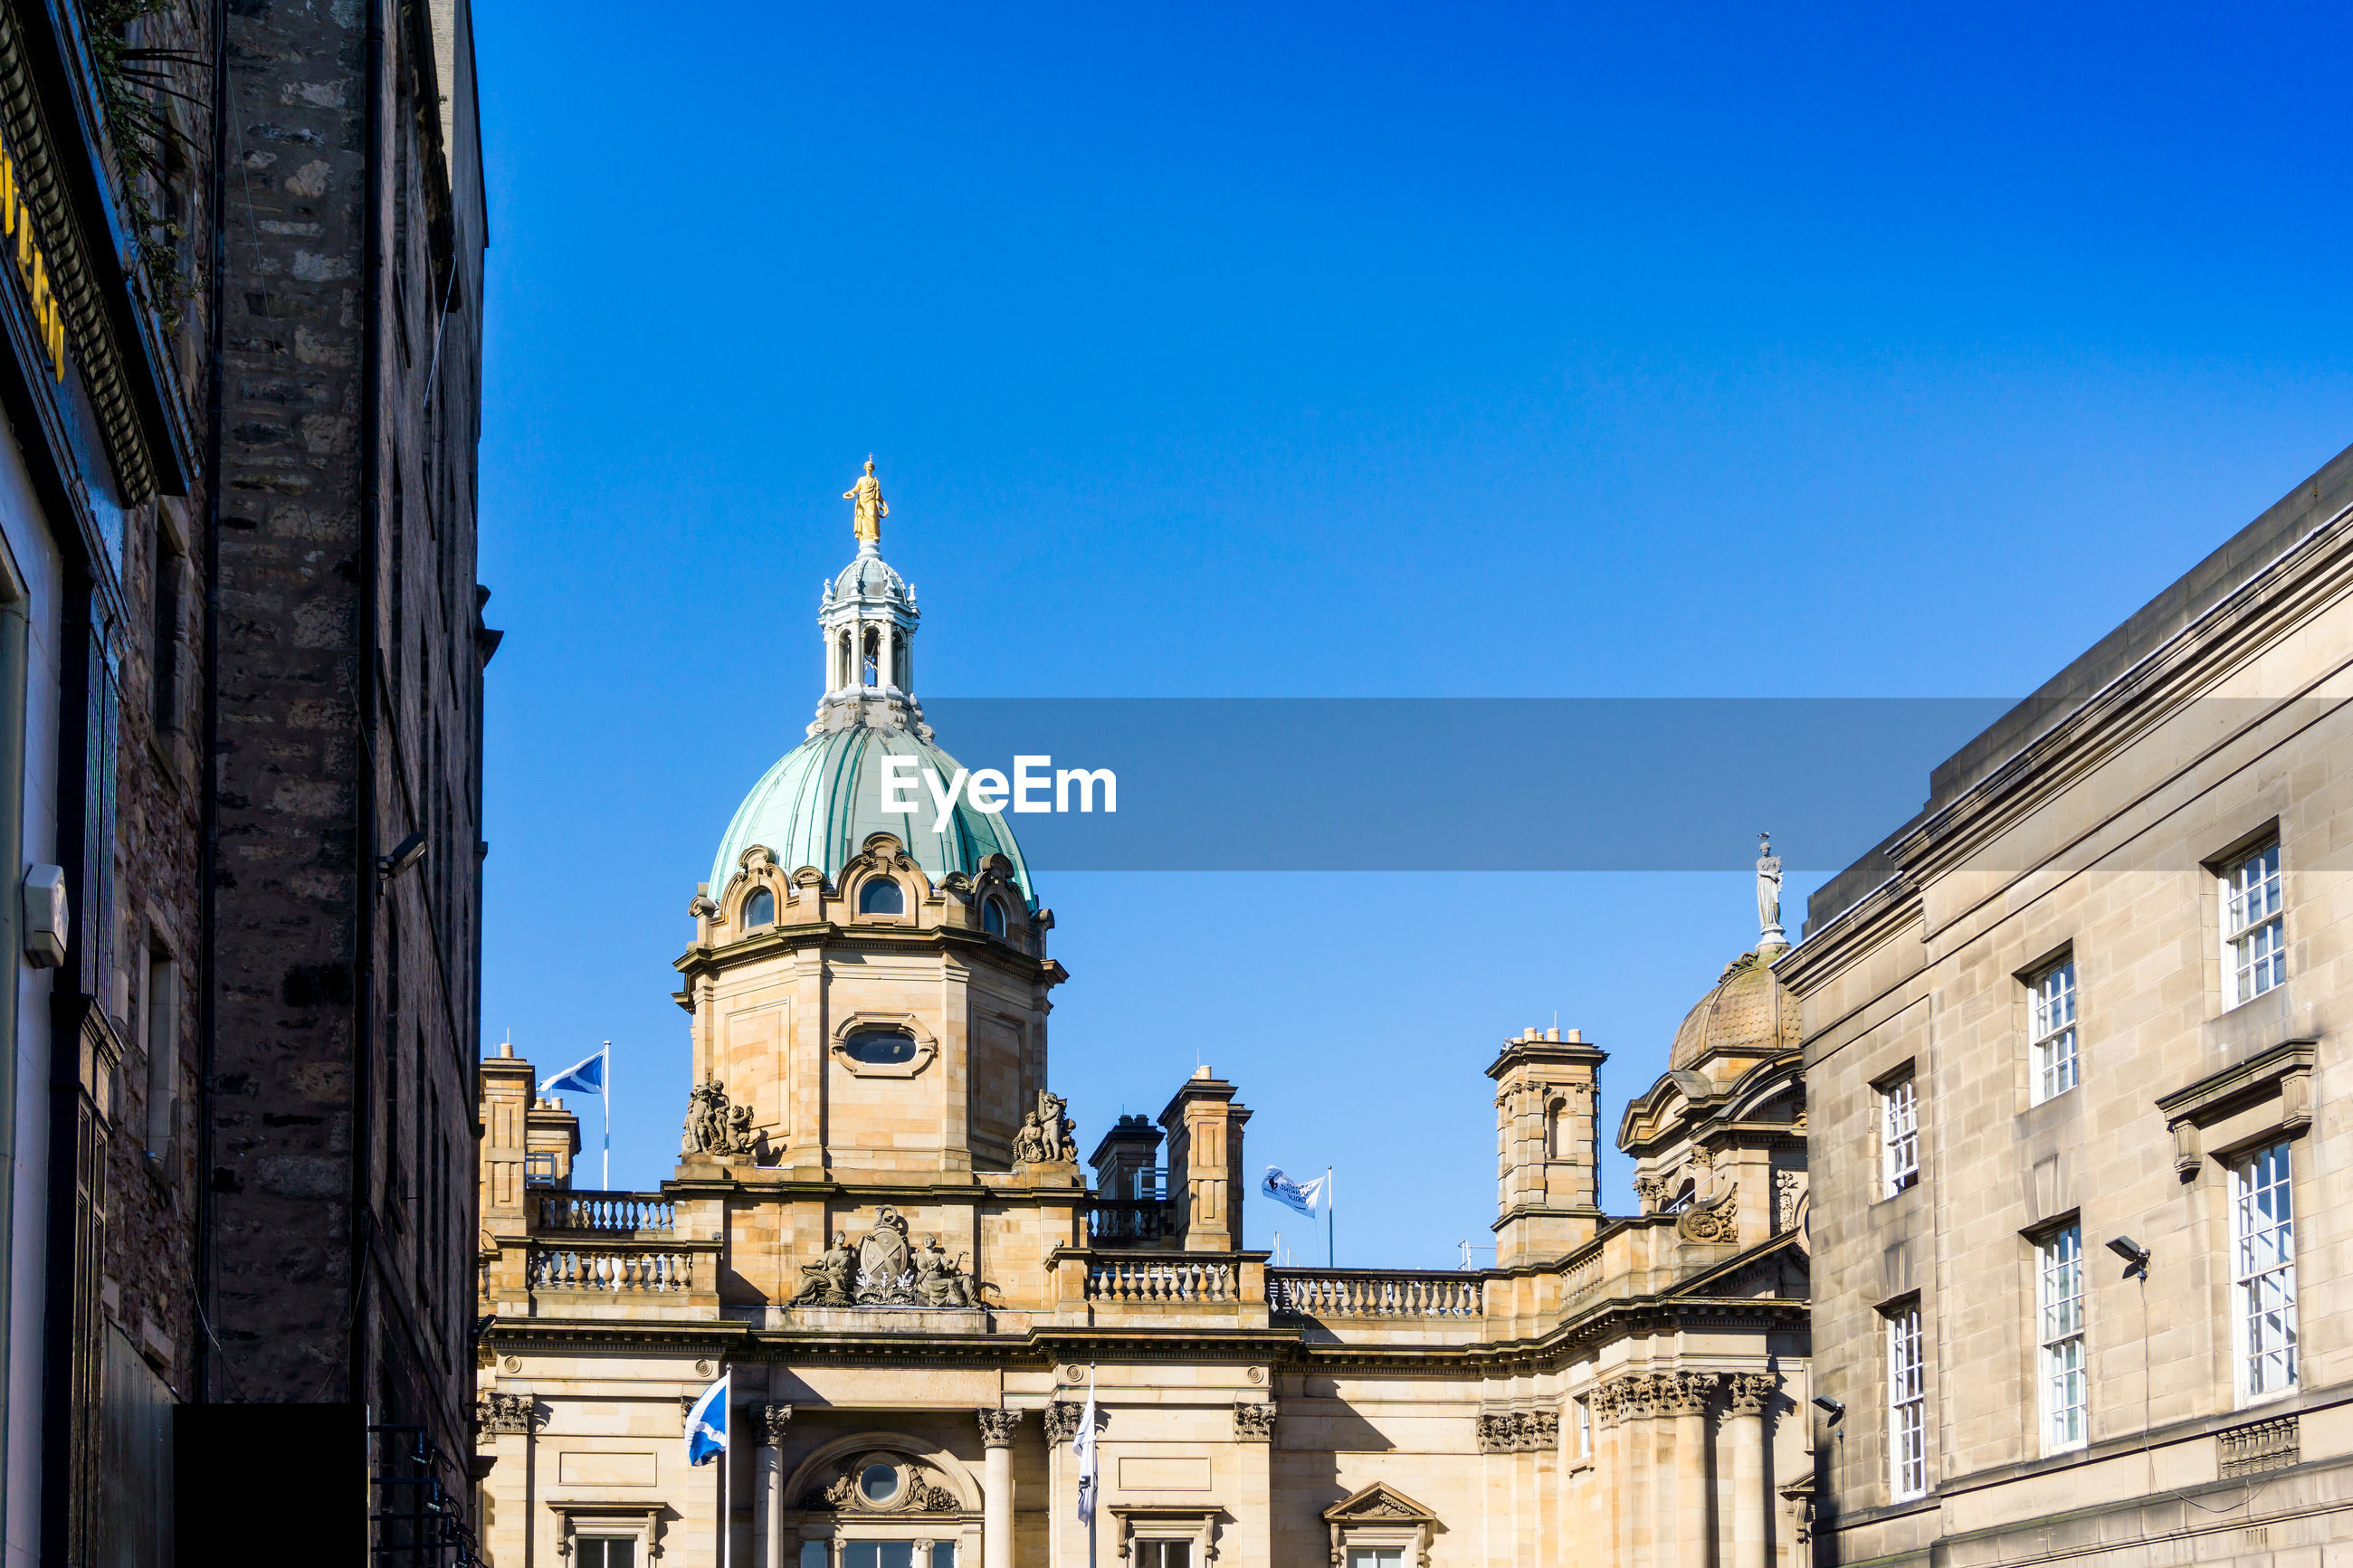 Bank of scotland against clear blue sky